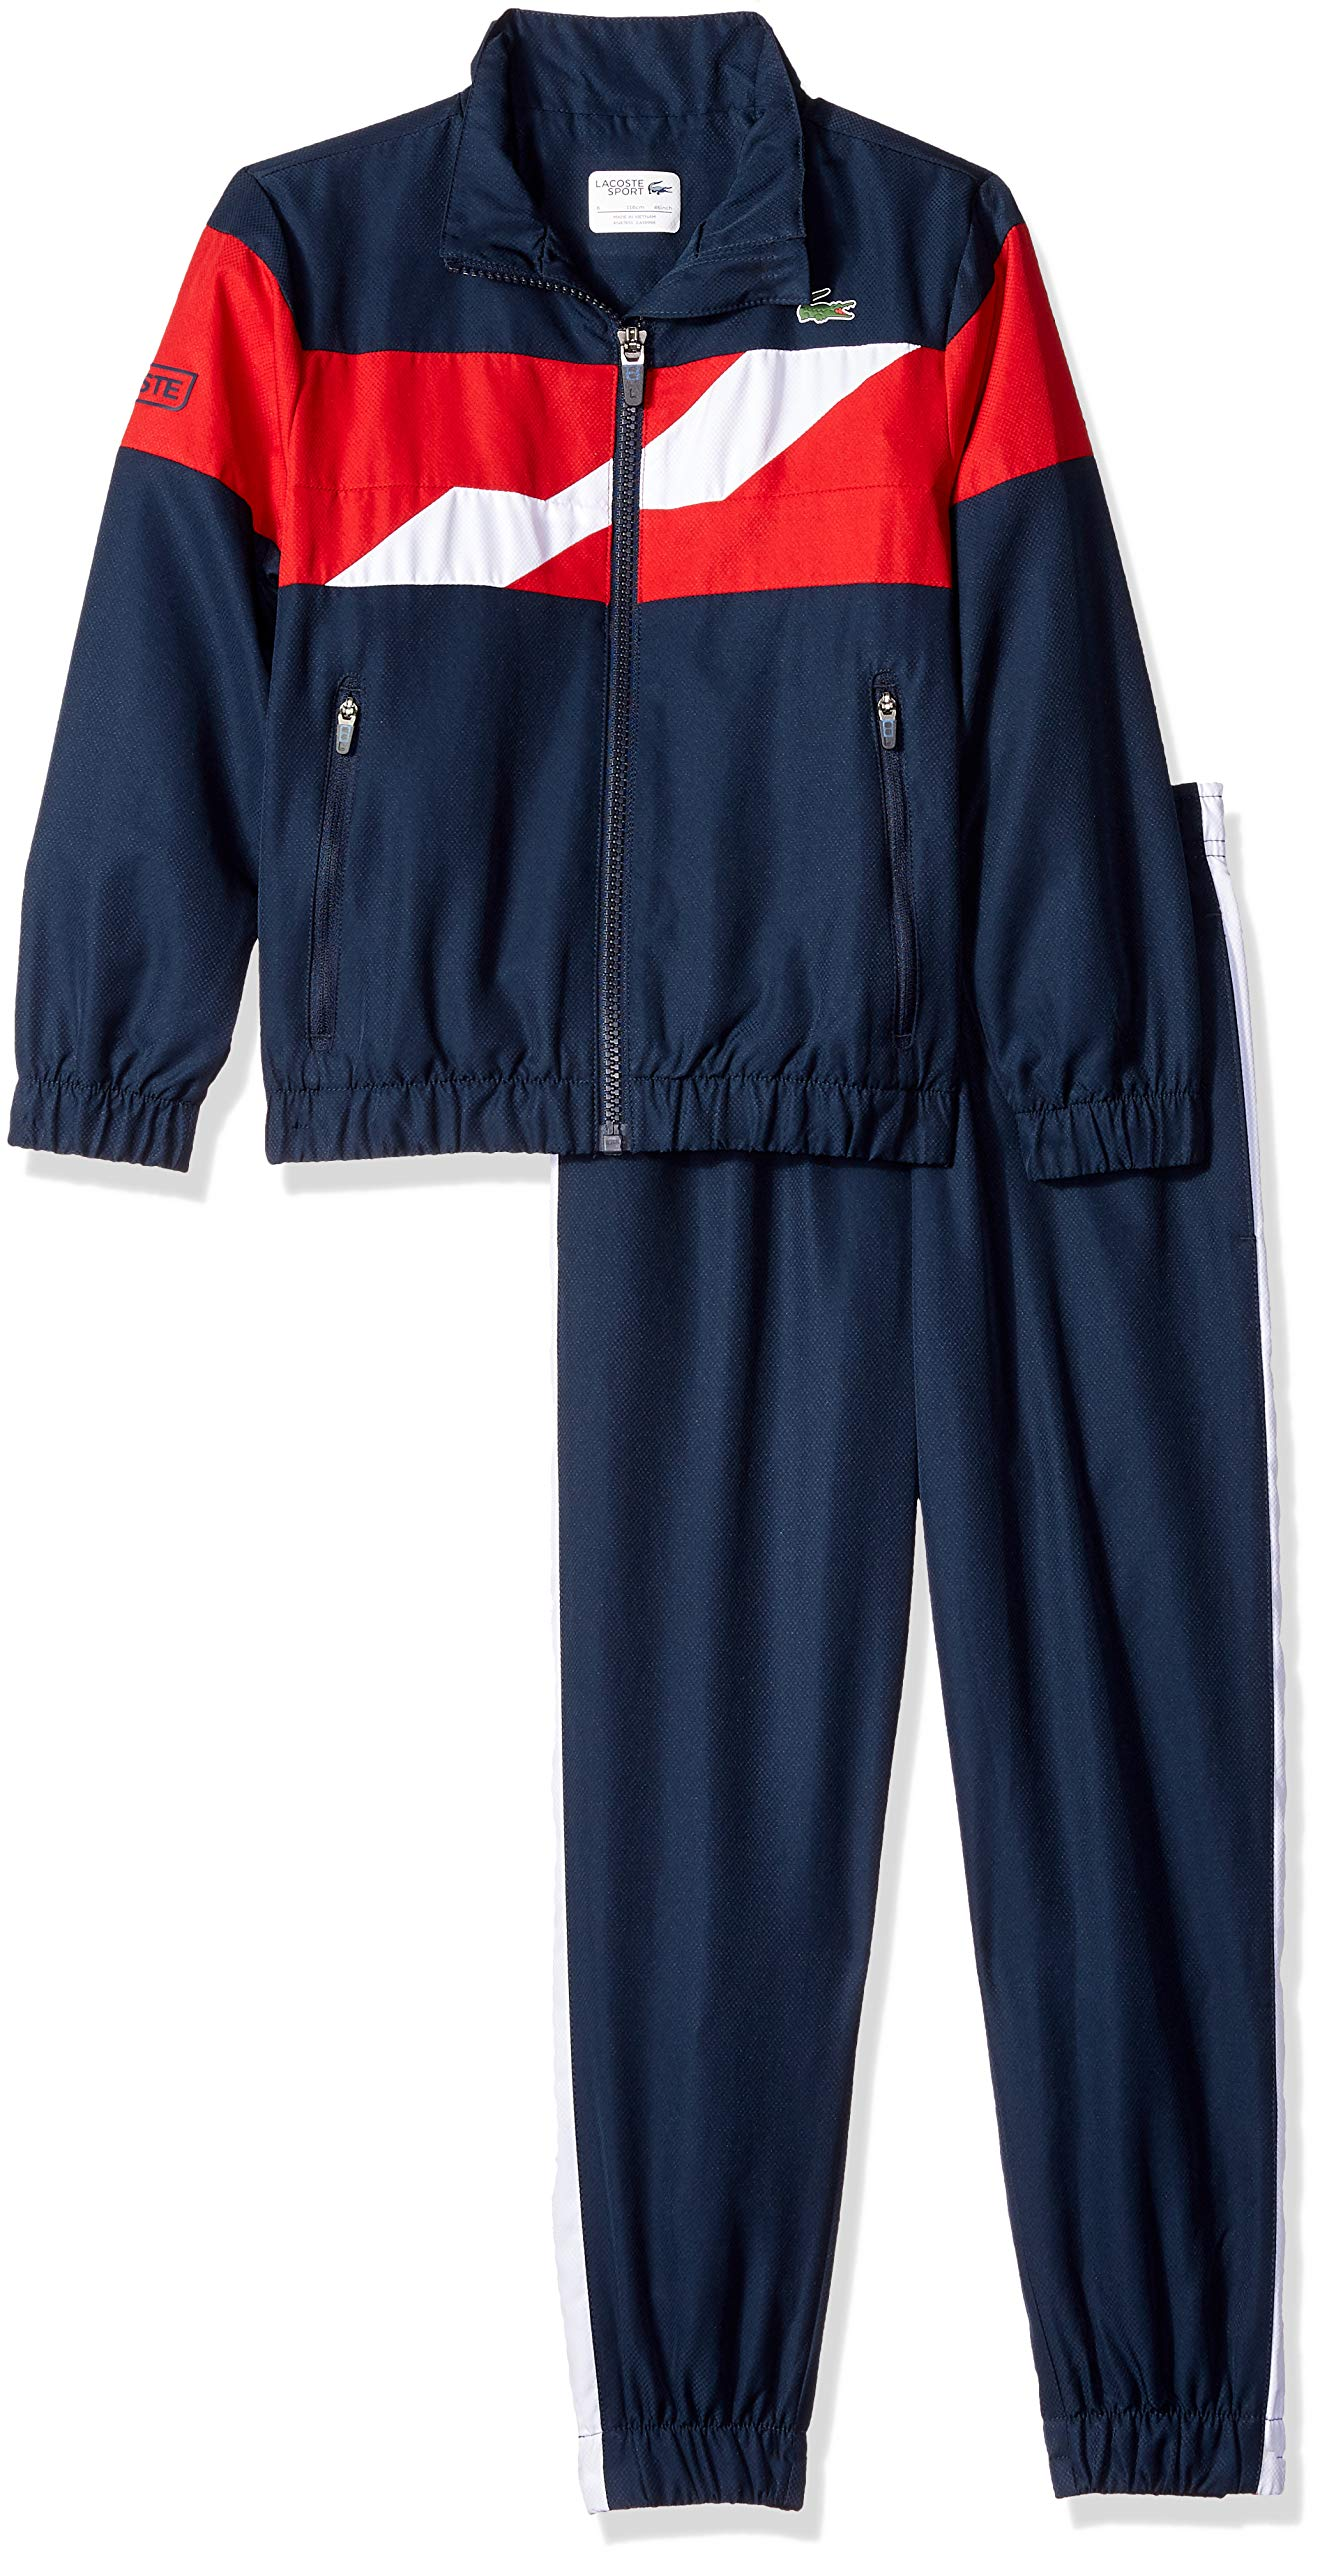 Lacoste Little Boy Sport Taffetas Color Block Chest Band Tracksuits, Navy Blue/Lighthouse red, 4